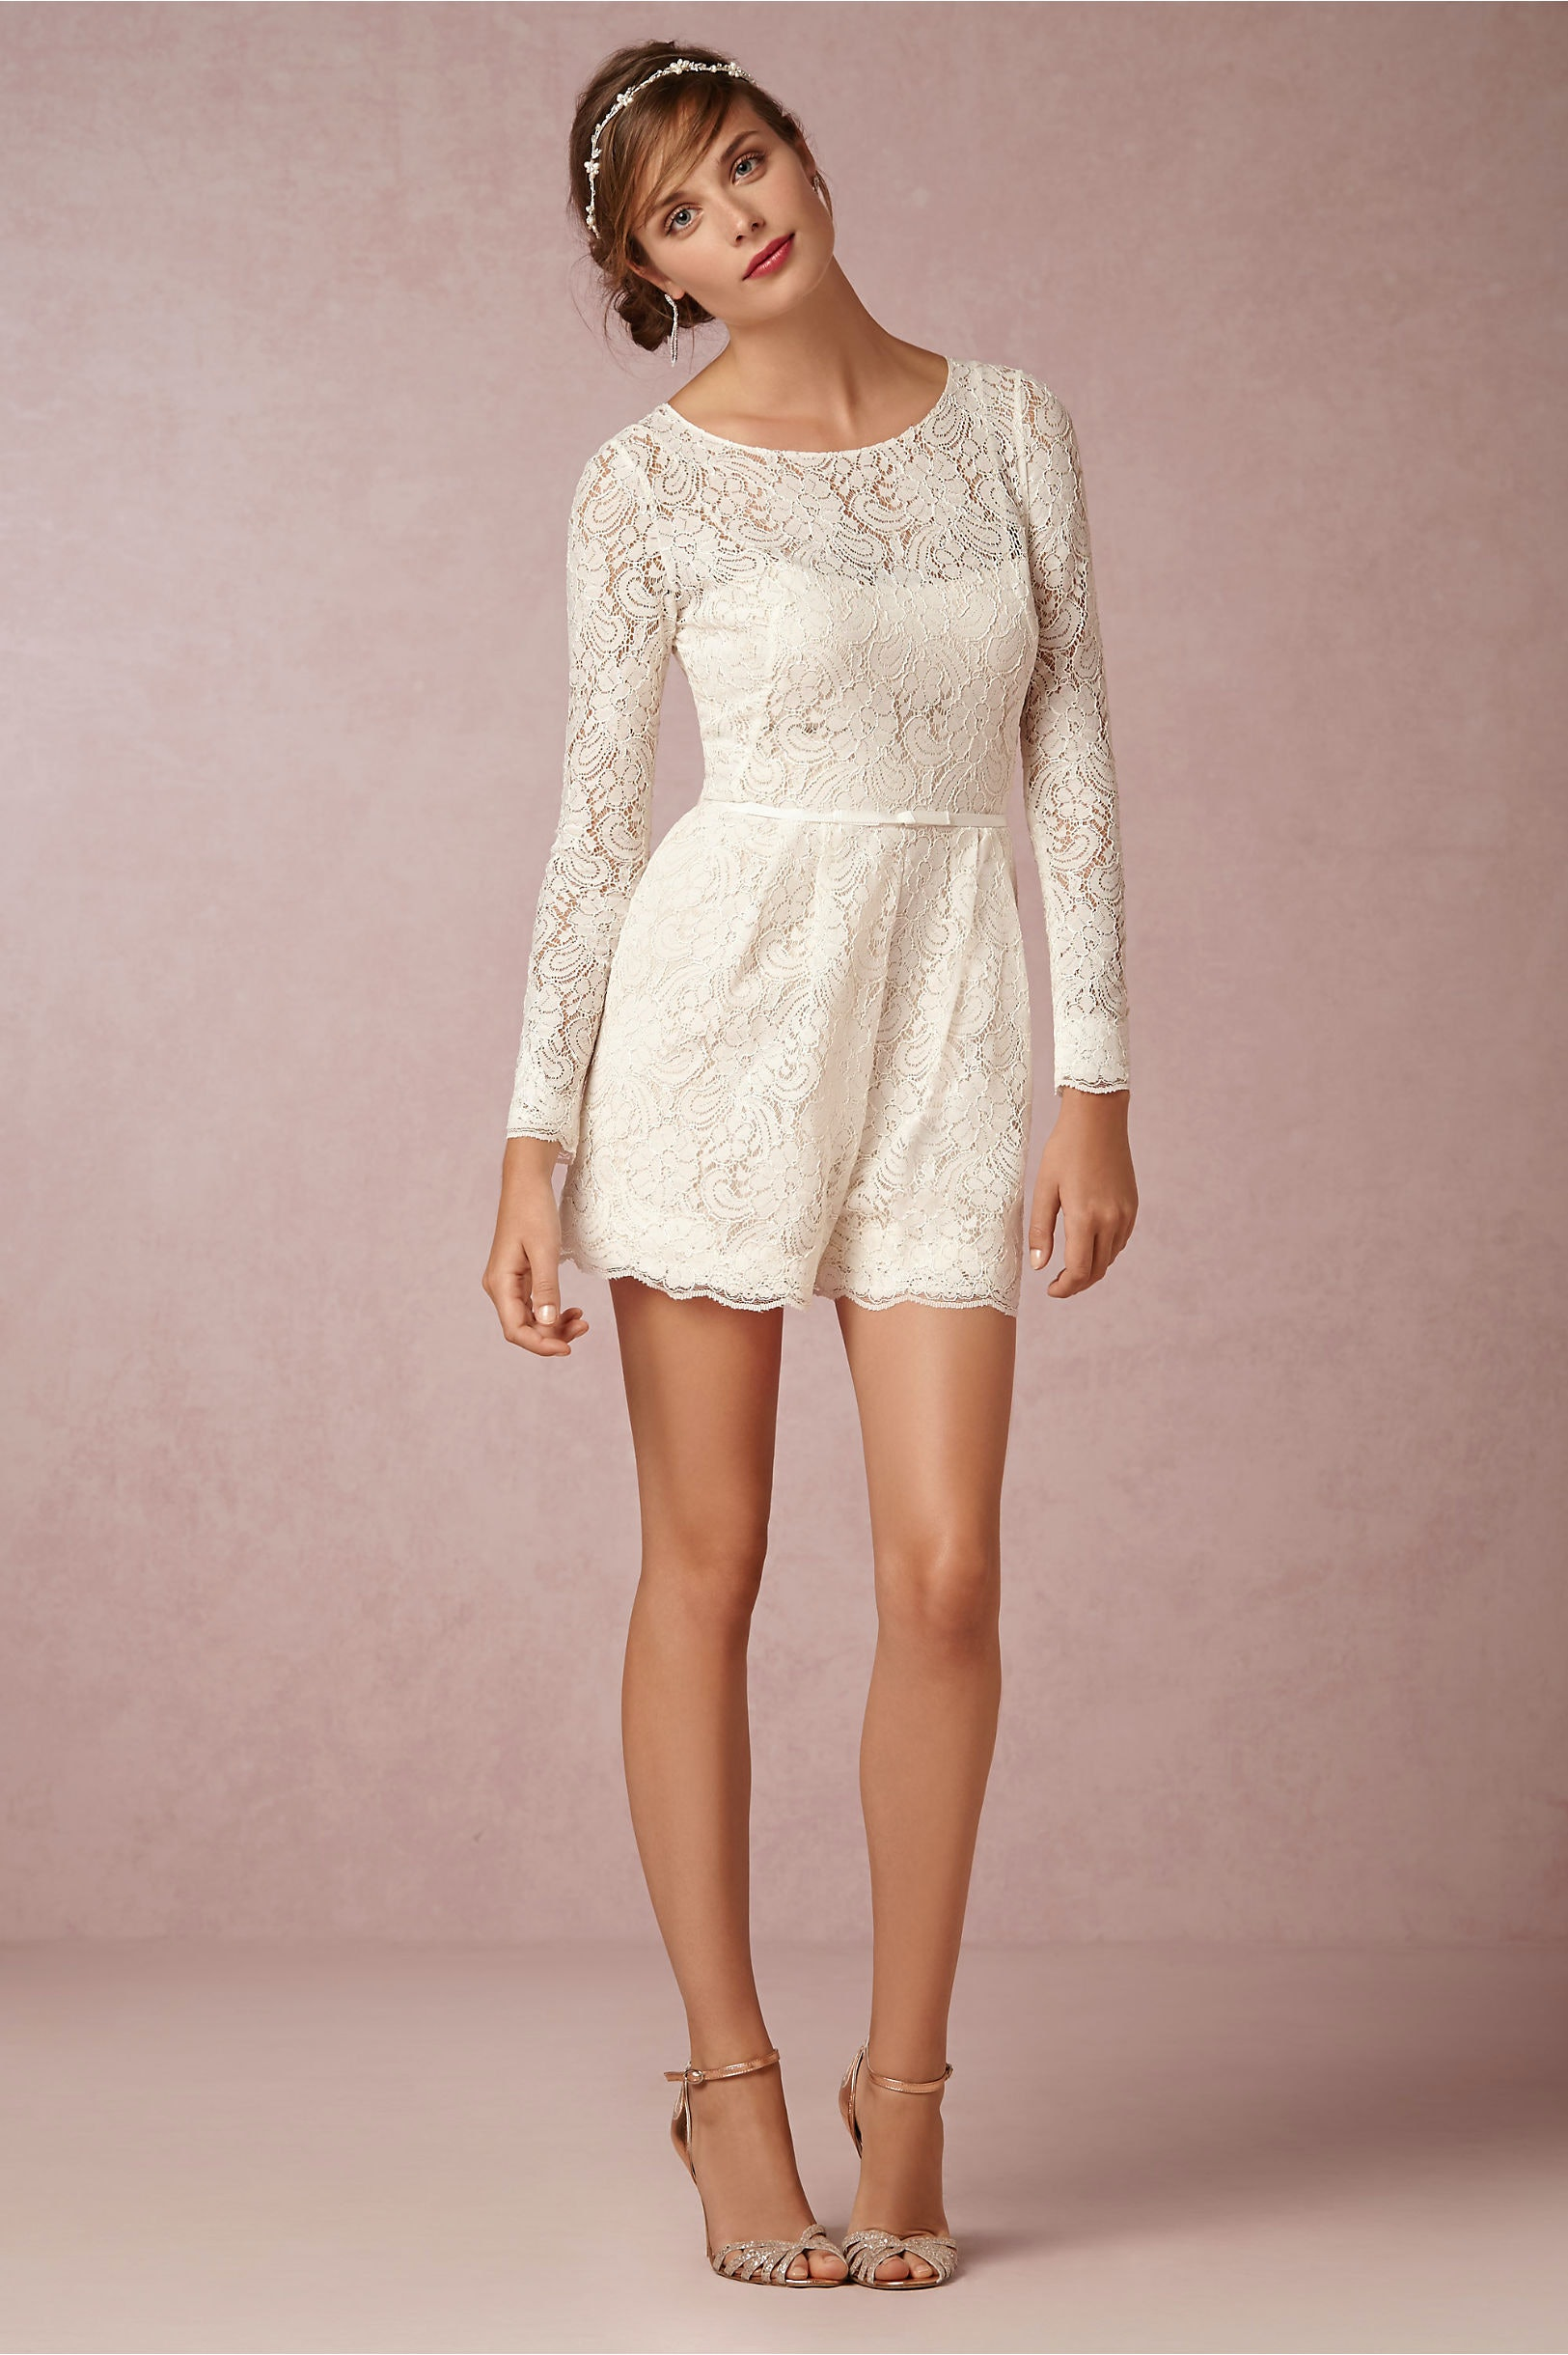 J Crew Is Selling Sequined Bridal Shorts Because Apparently Thats